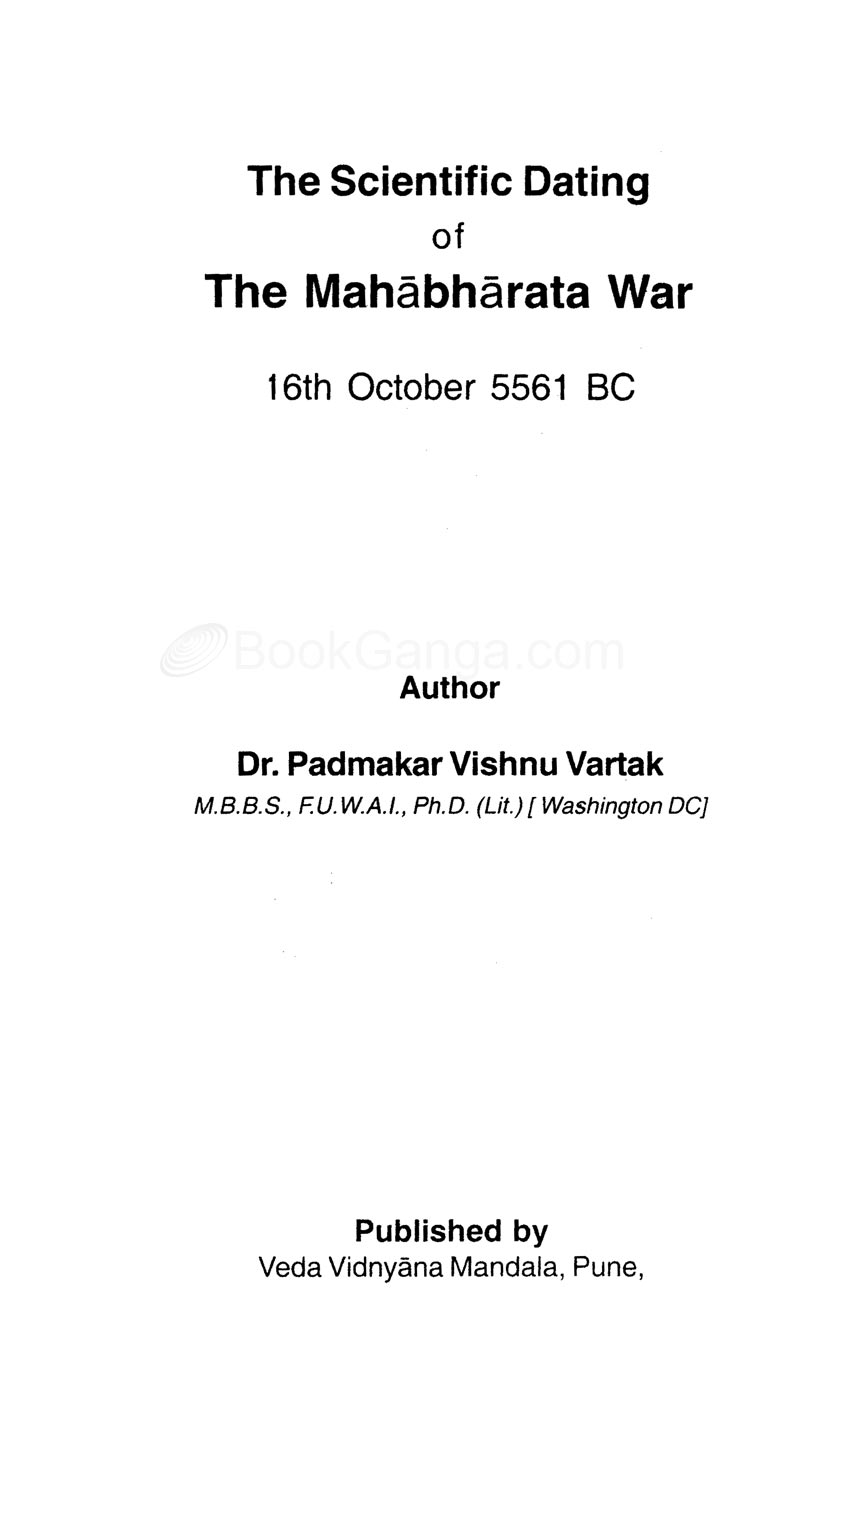 scientific dating of mahabharata